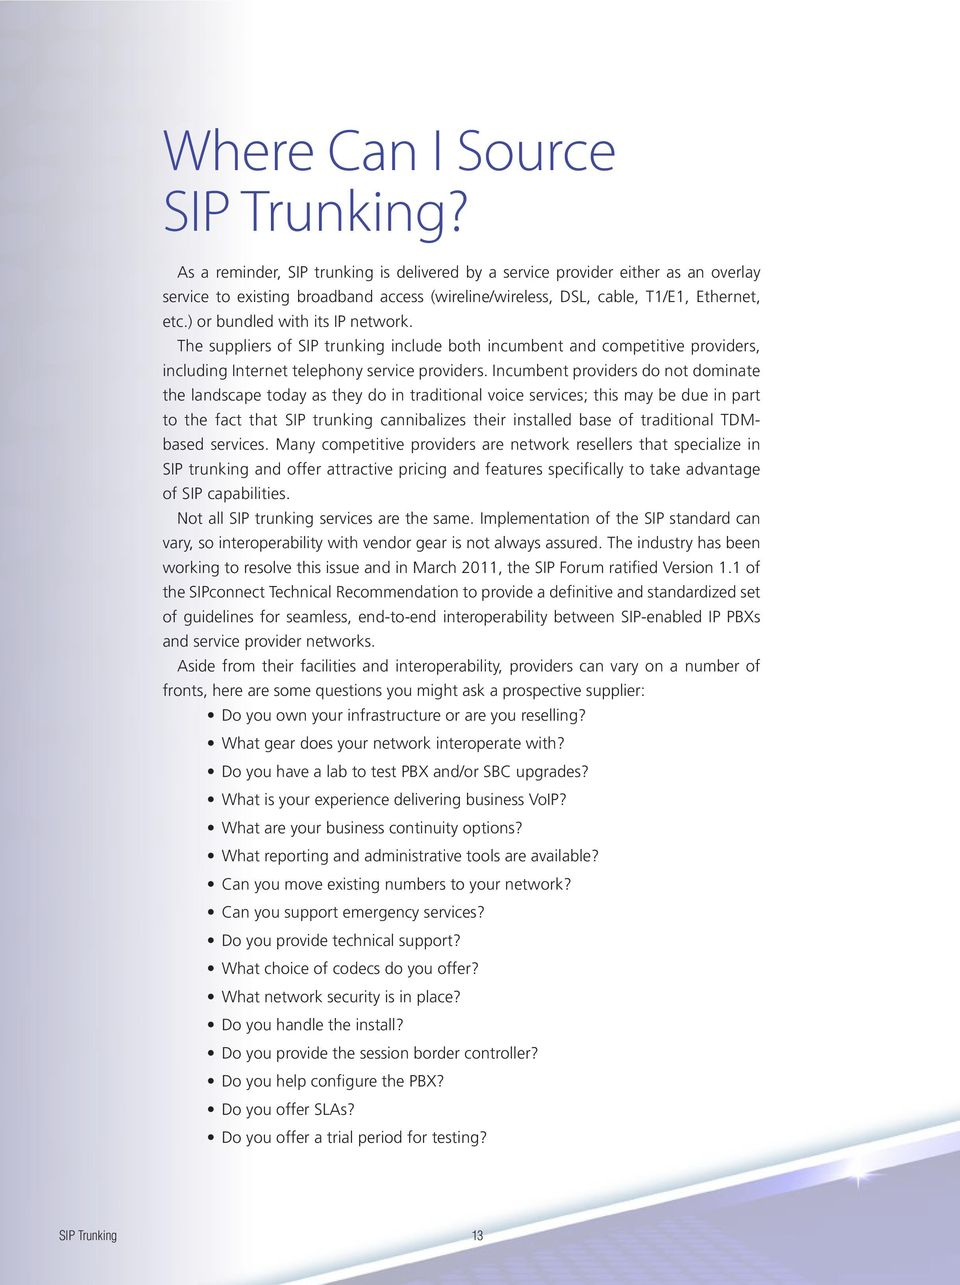 ) or bundled with its IP network. The suppliers of SIP trunking include both incumbent and competitive providers, including Internet telephony service providers.